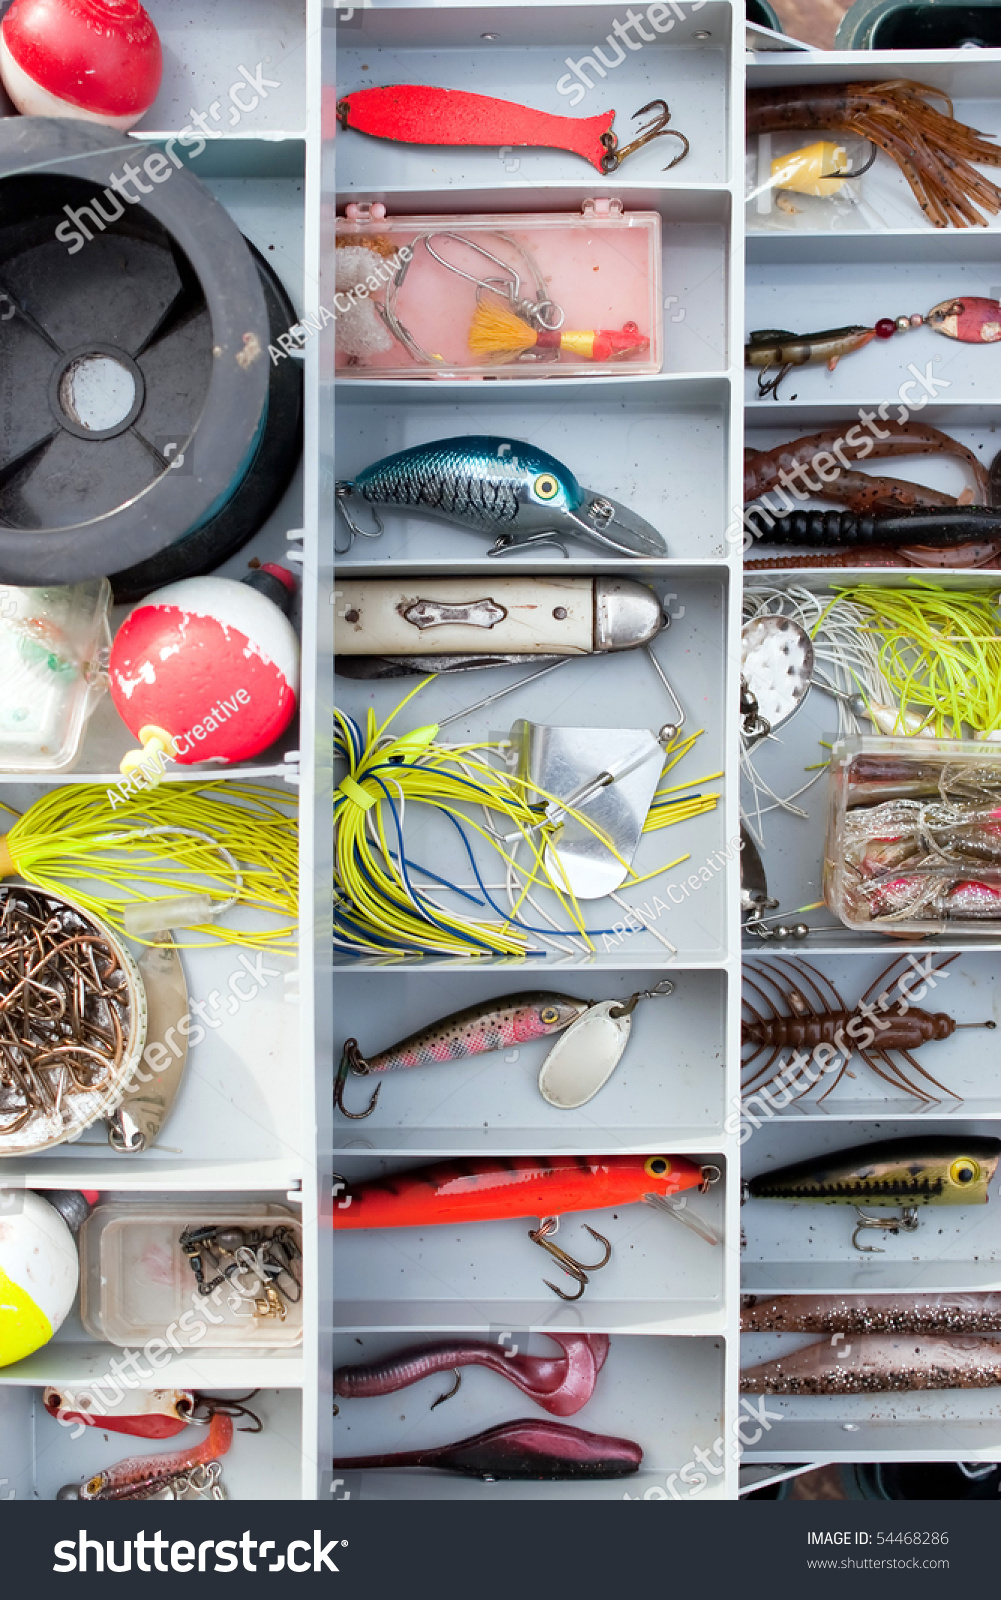 a fully stocked fisherman's tackle box fully stocked with lures, Fishing Reels